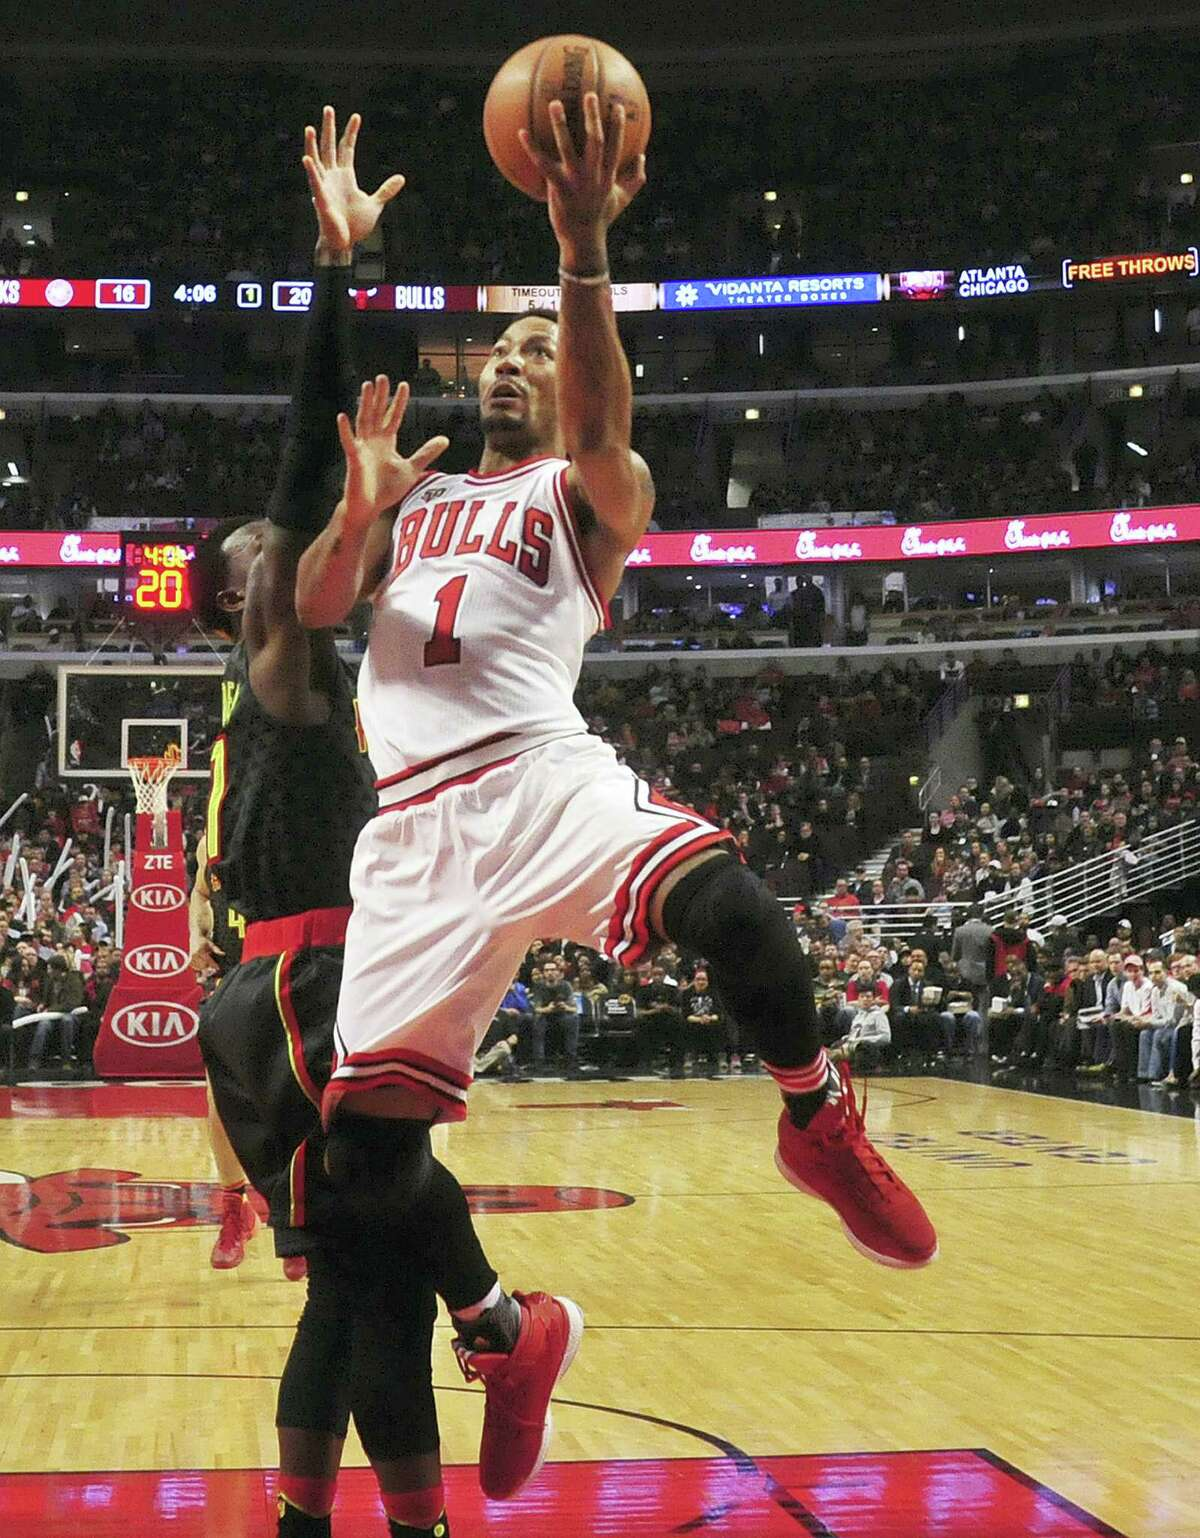 In this March 28, 2016 photo, former Chicago Bulls guard Derrick Rose (1) goes to the basket on Atlanta Hawks guard Jeff Teague during the first half of an NBA basketball game in Chicago.